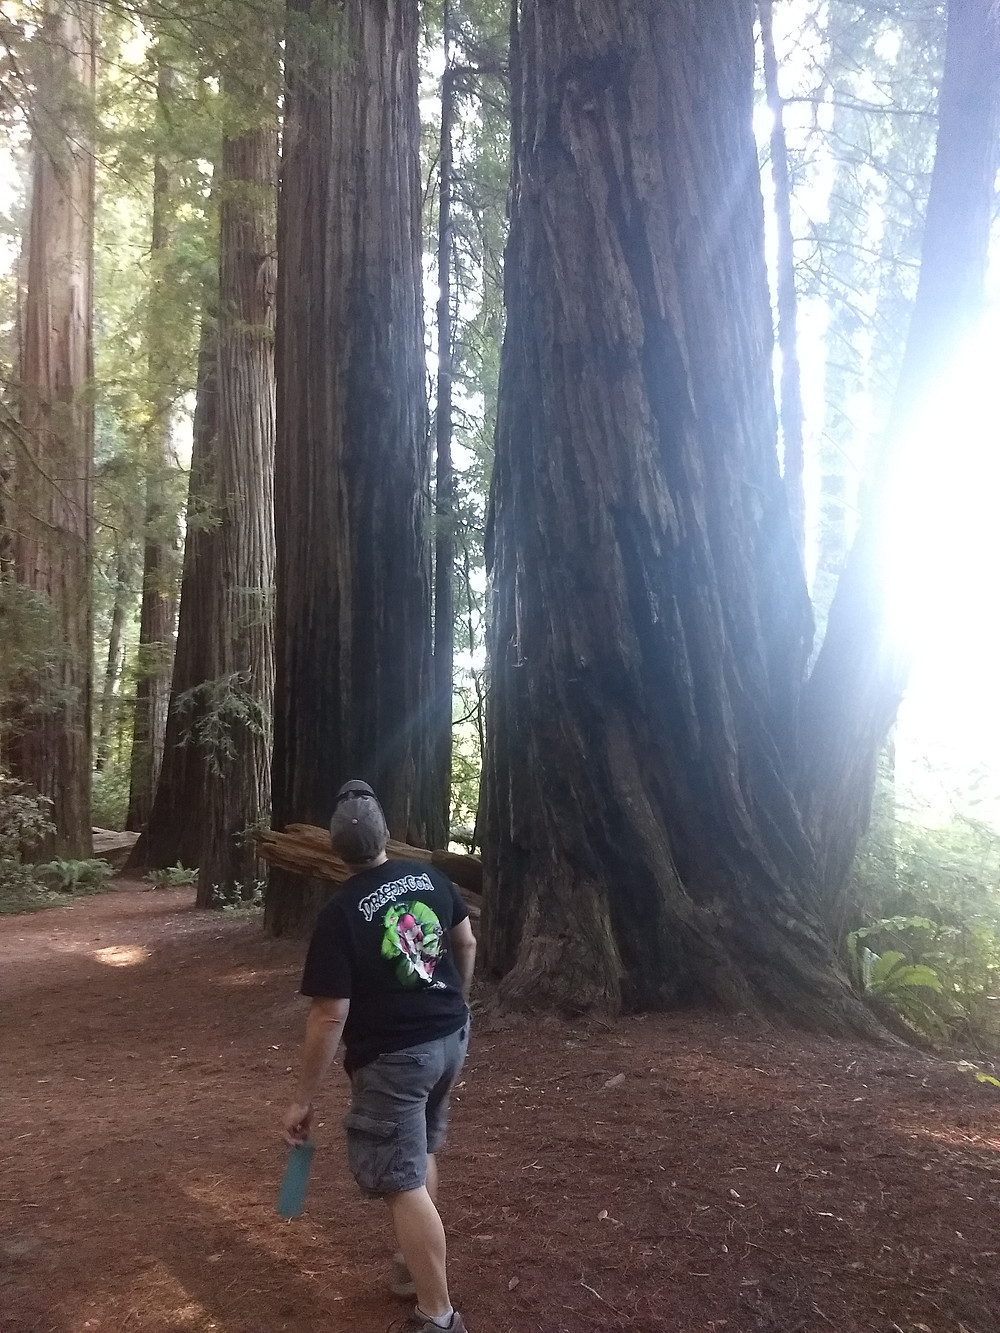 Jeremy, in his best DragonCon tshirt, admiring these awesome behemoth trees